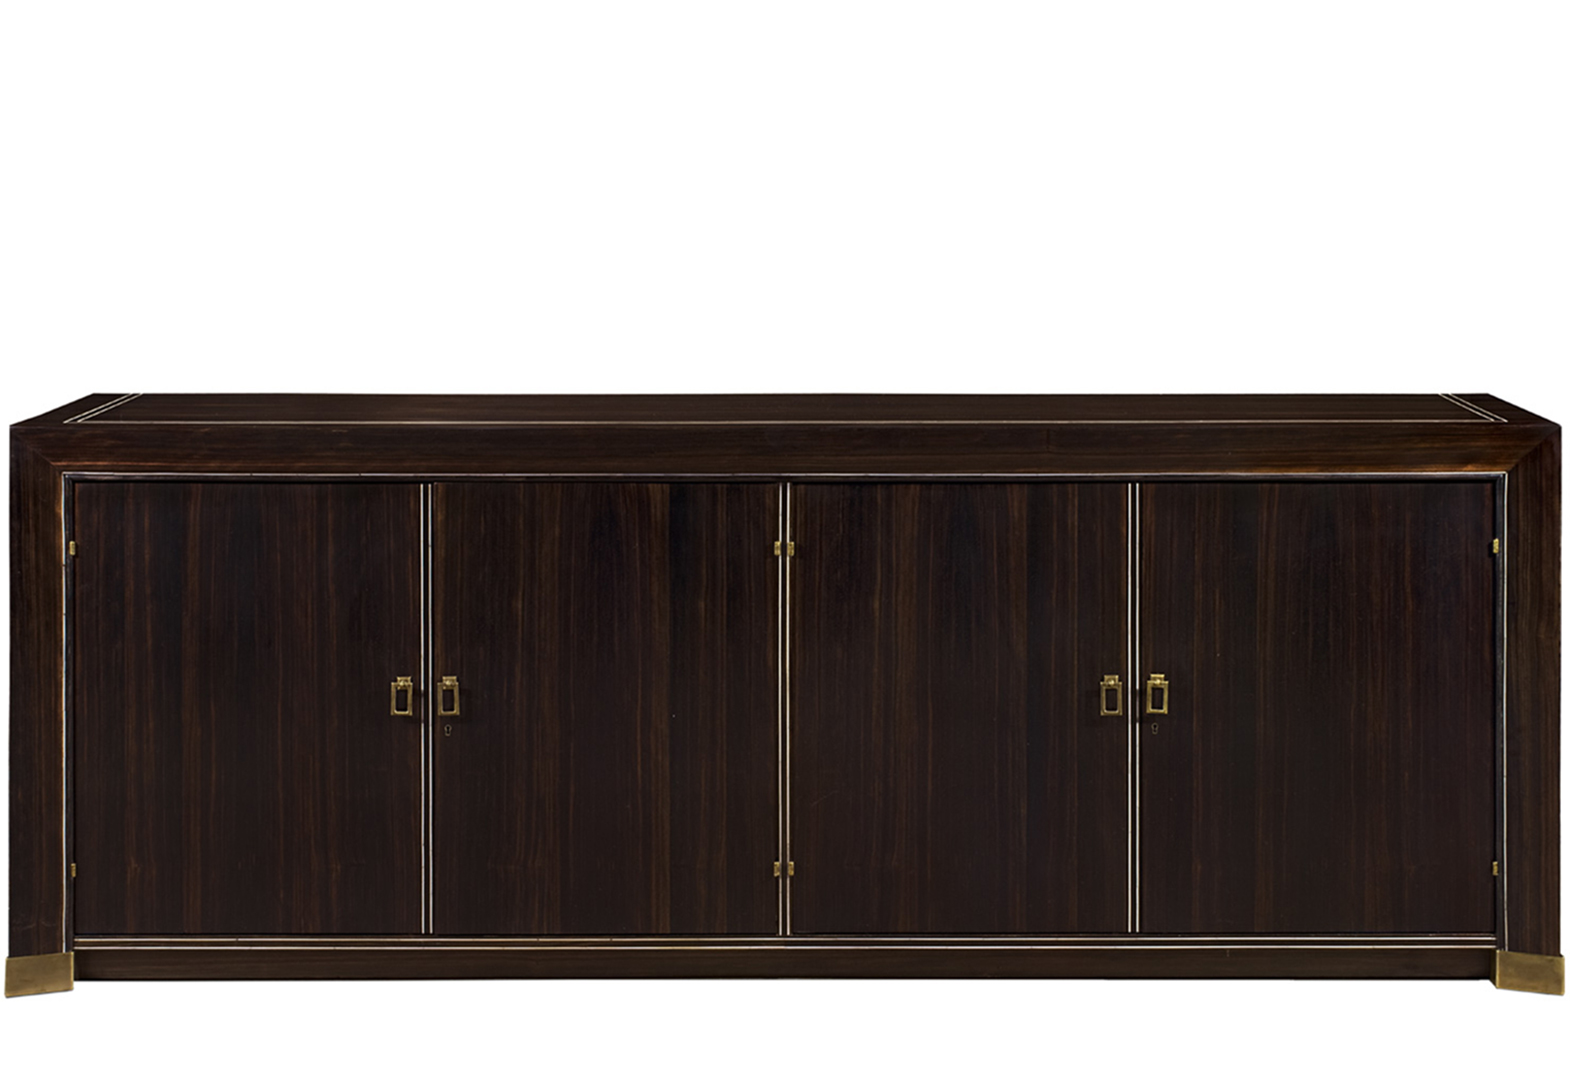 METZ EBONY BUFFET WITH 4 DOORS